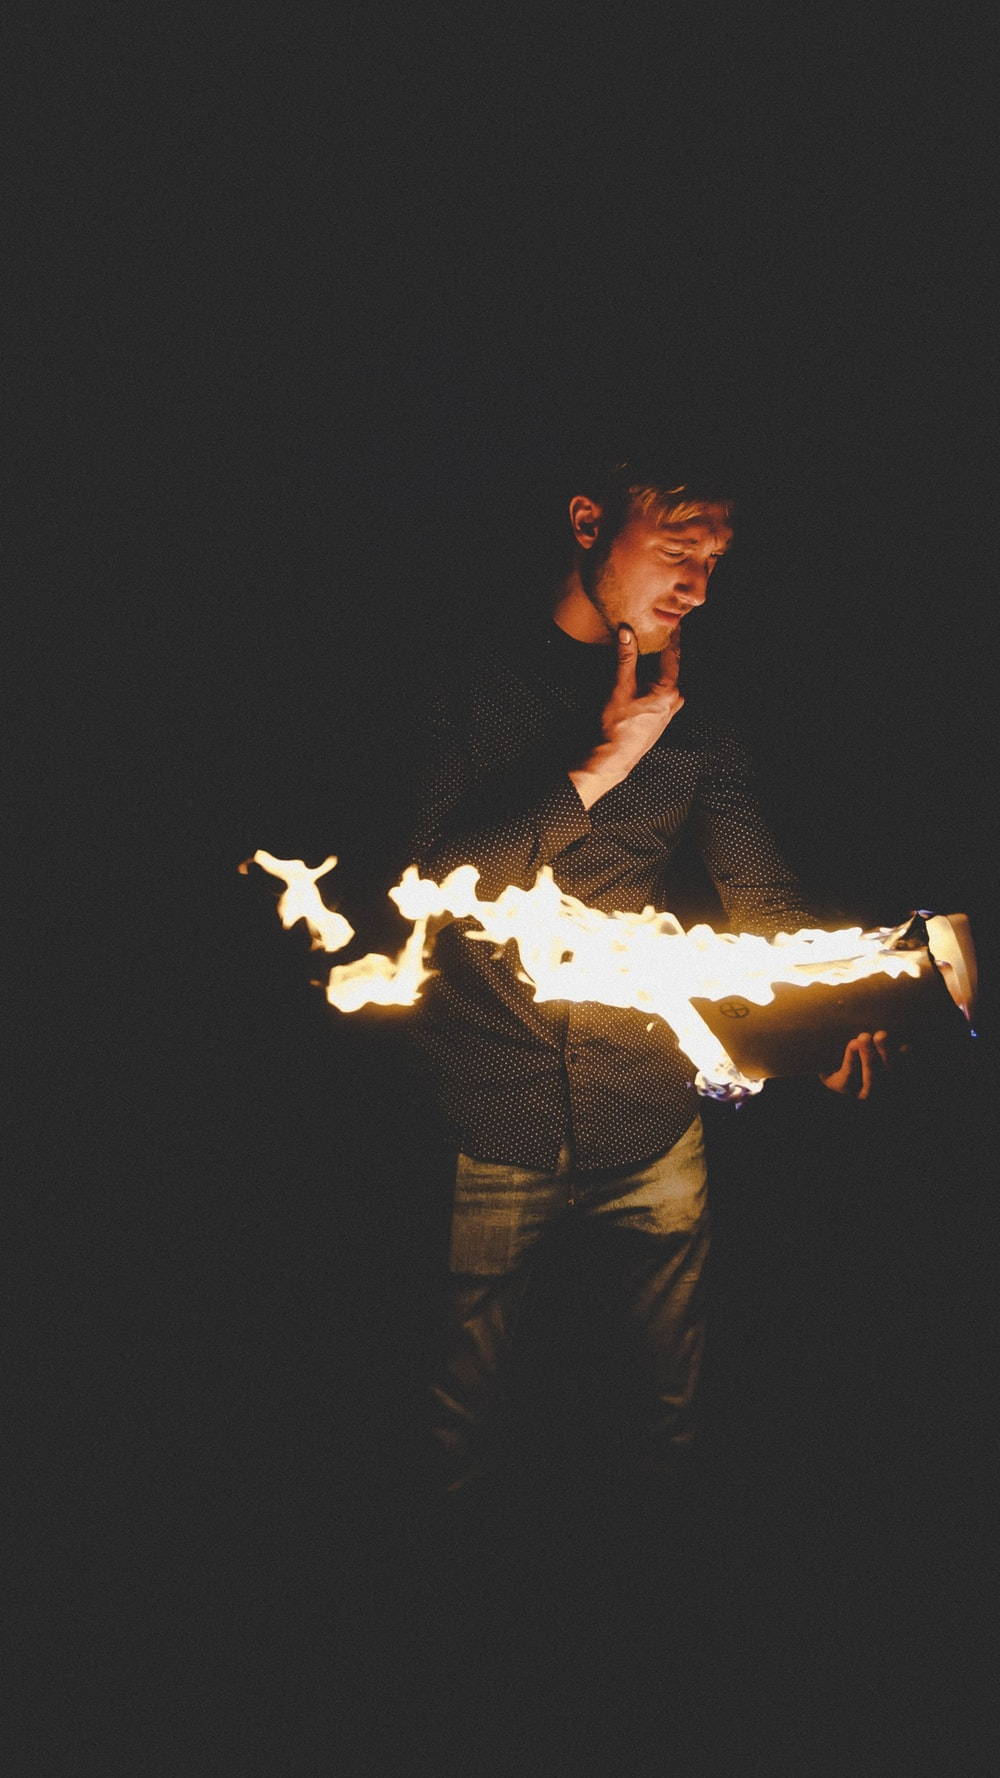 man playing with fire